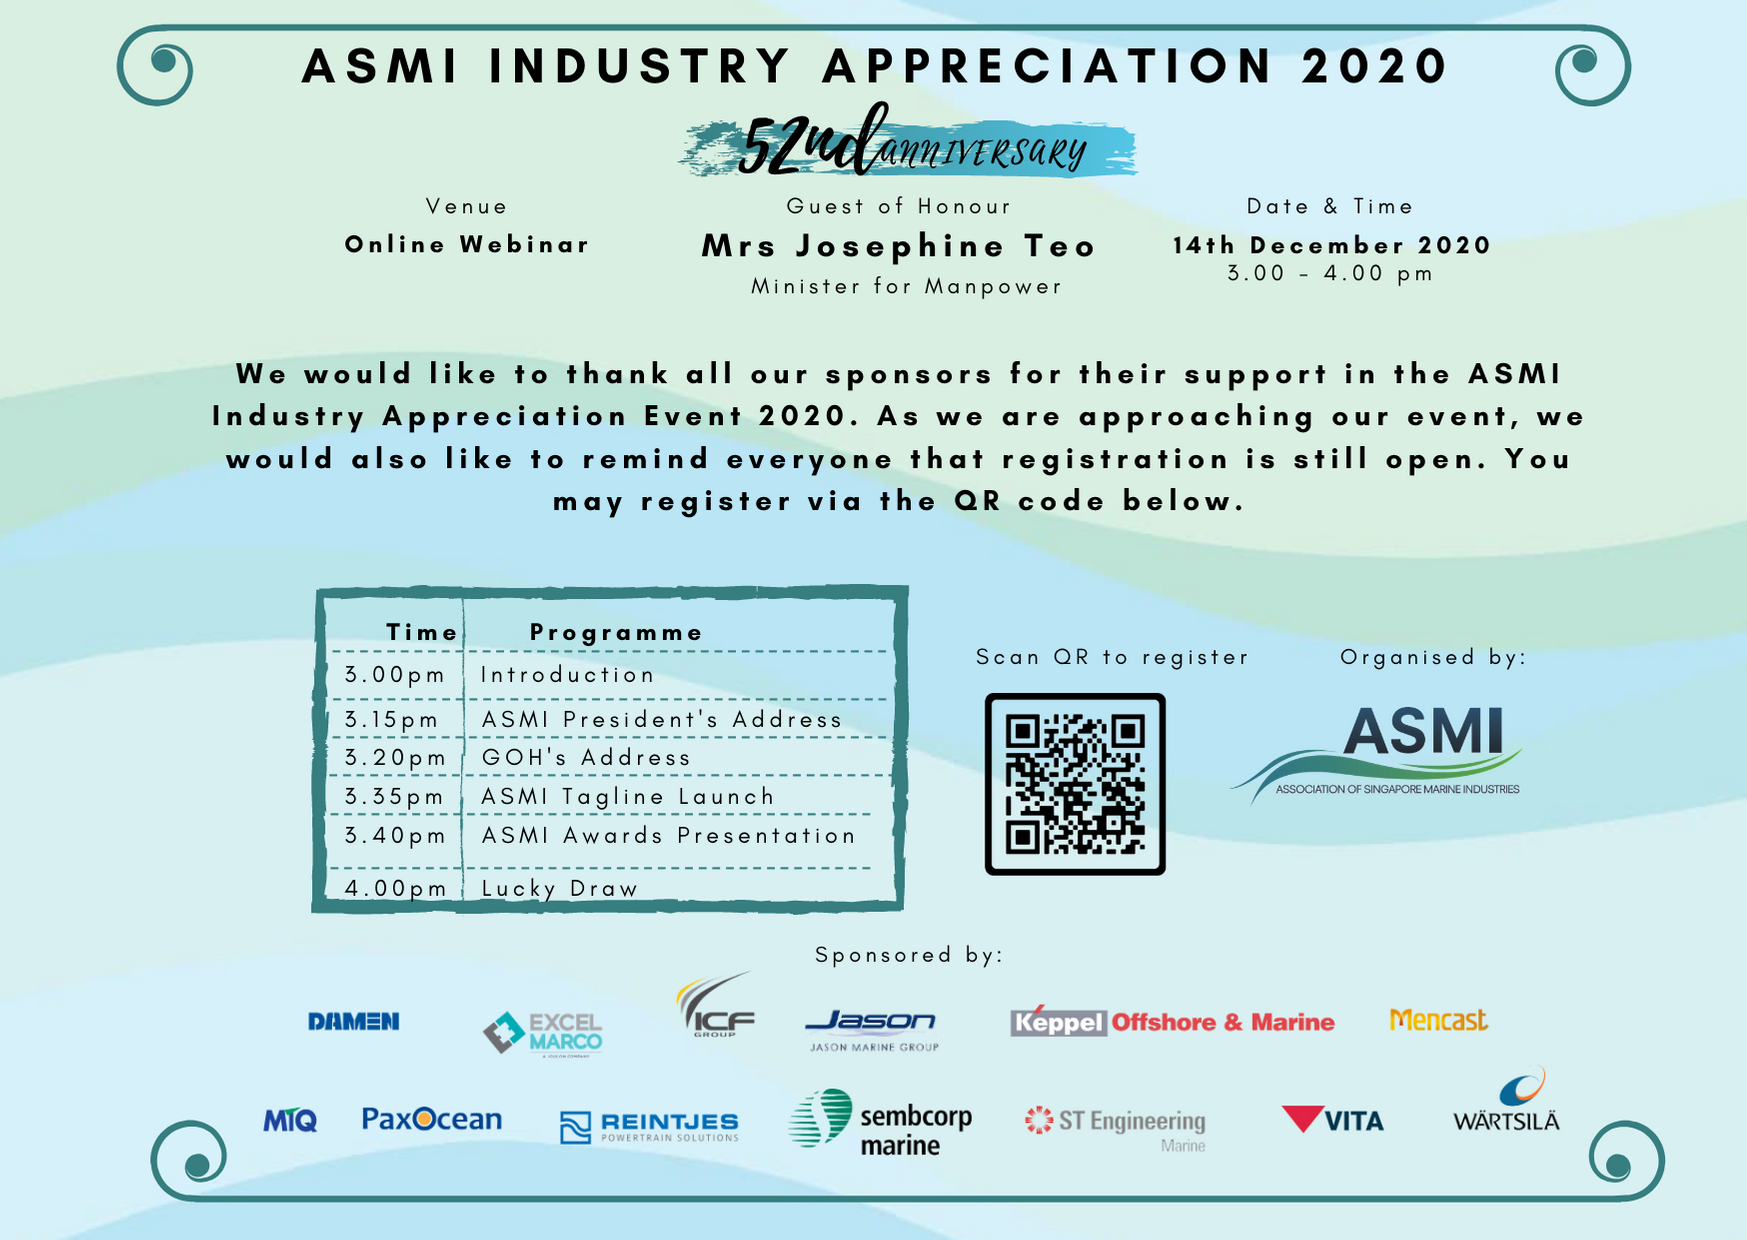 ASMI Industry Appreciation 2020